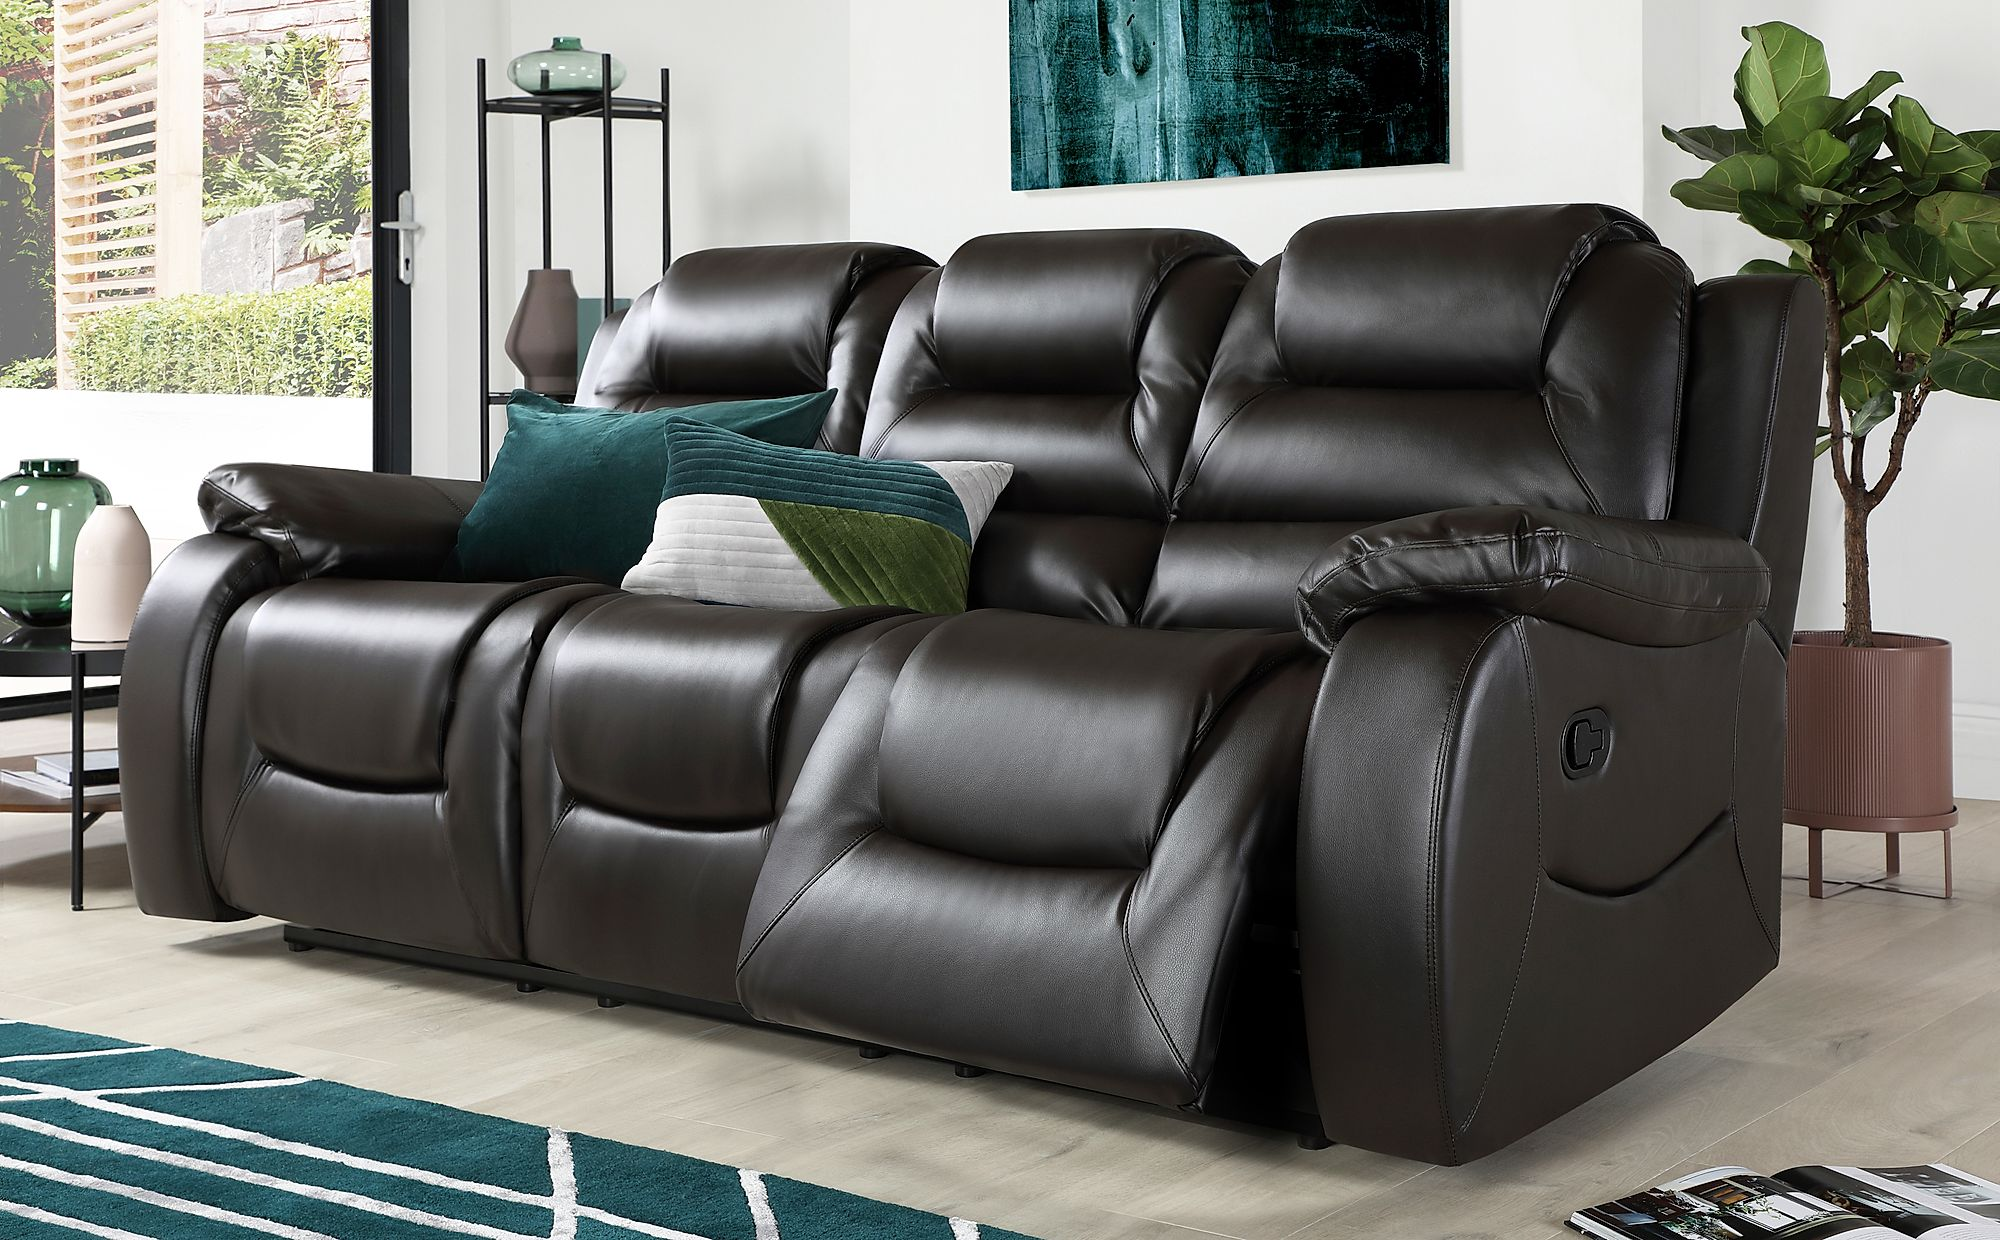 Vancouver Brown Leather 3 Seater Recliner Sofa | Furniture ...